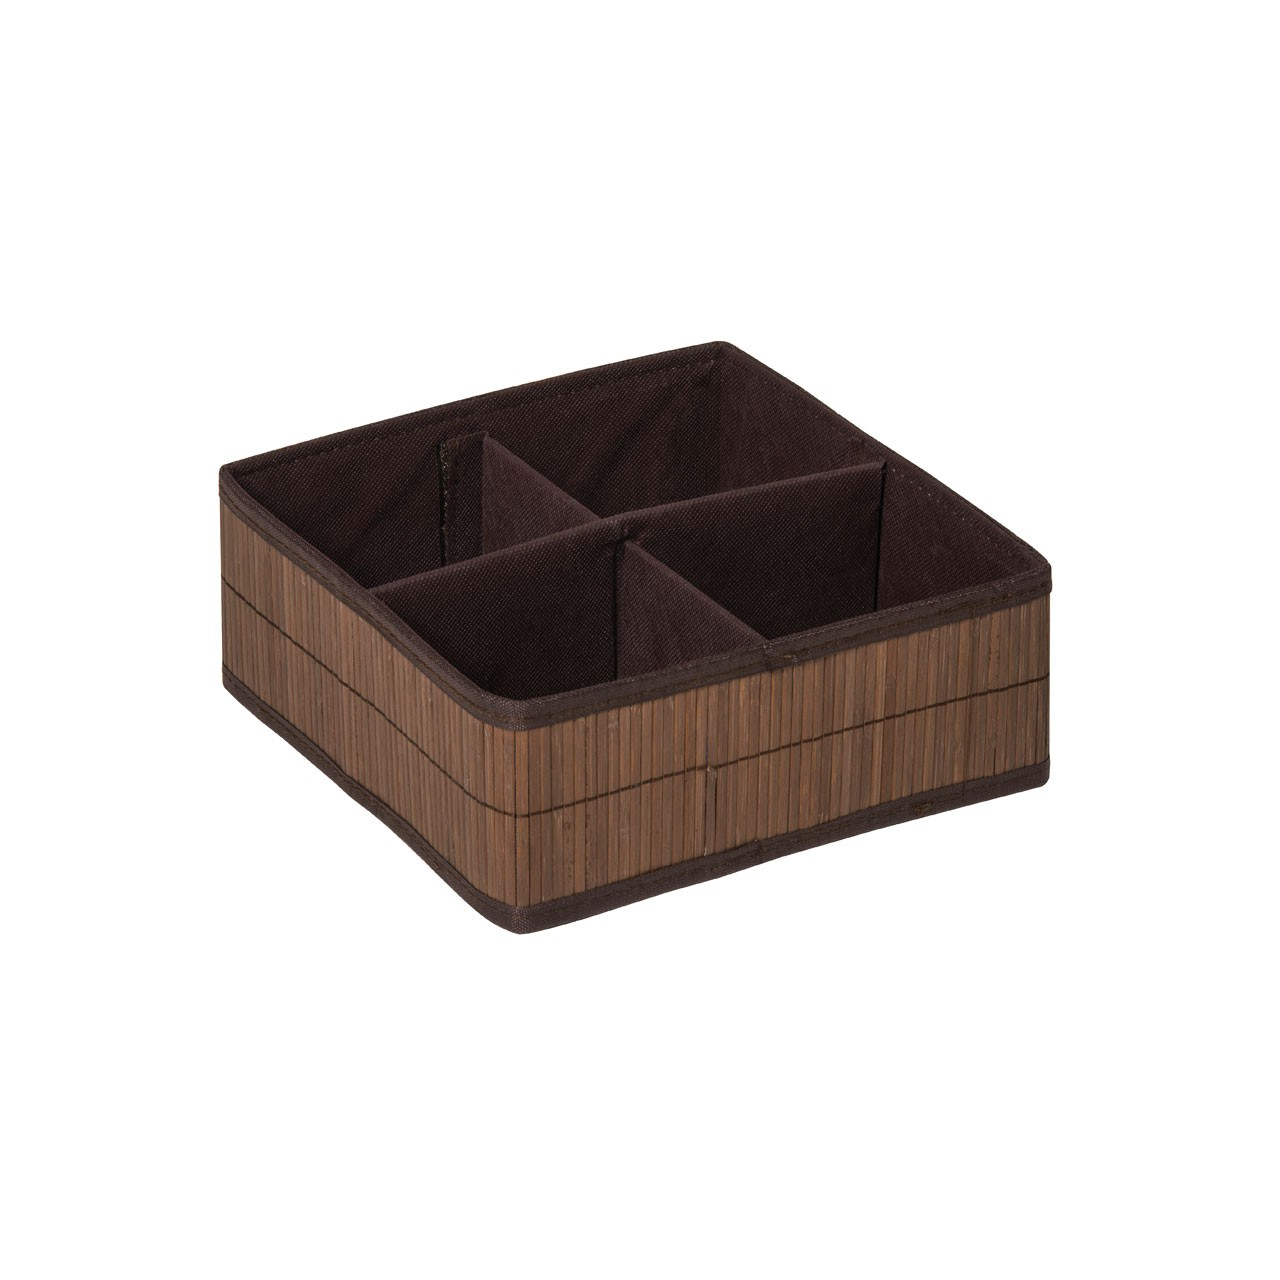 Prime Furnishing Kankyo 4 Sections Storage Box - Dark Brown